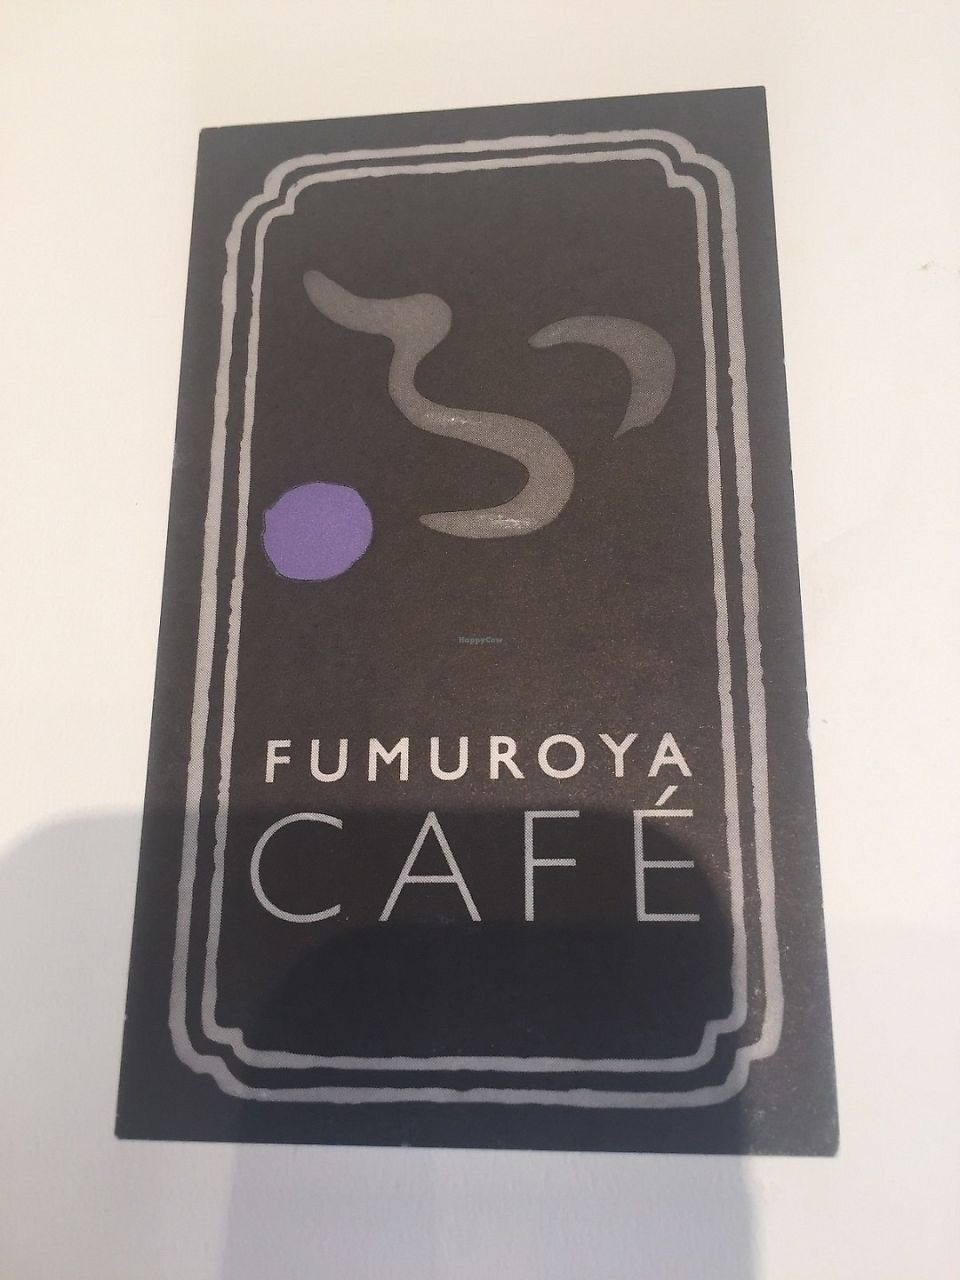 """Photo of Fumuroya Cafe   by <a href=""""/members/profile/Vegeiko"""">Vegeiko</a> <br/>Signboard  <br/> July 11, 2016  - <a href='/contact/abuse/image/76418/284566'>Report</a>"""